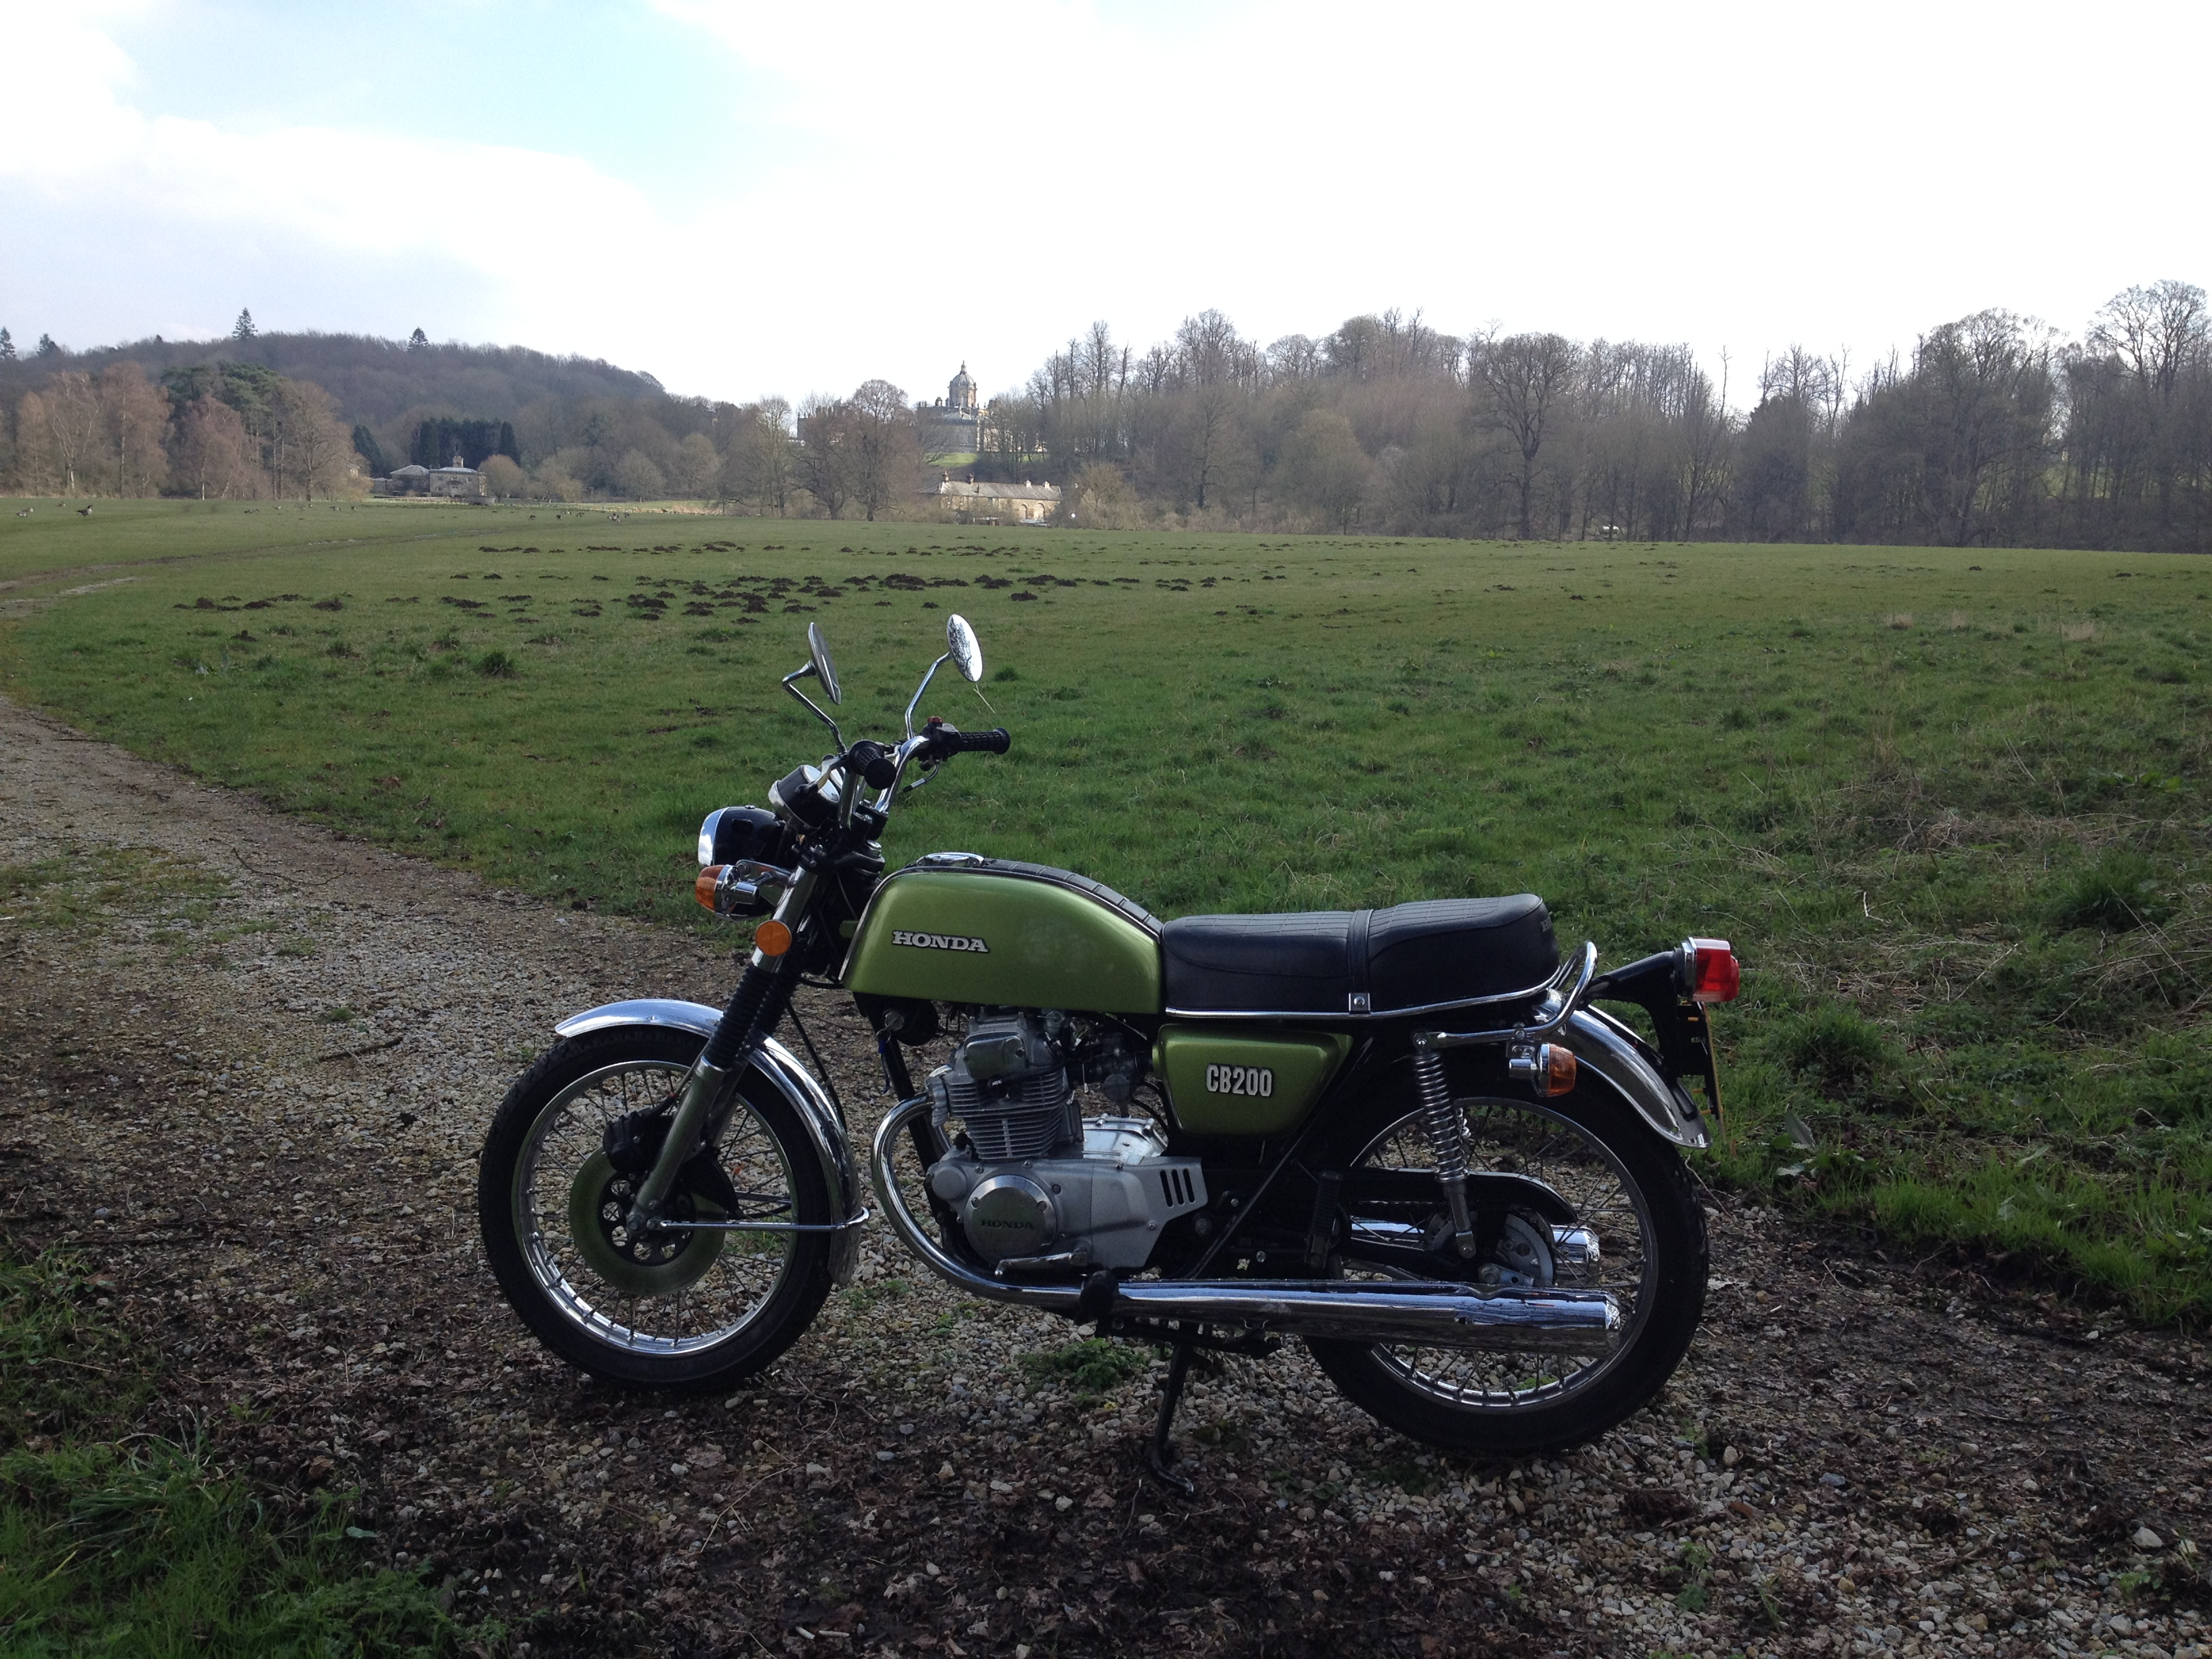 CB200 Olive is back on the road again-bike-ride-out-89-miles-helmsley-surounding-villages-3.4.16-009.jpg